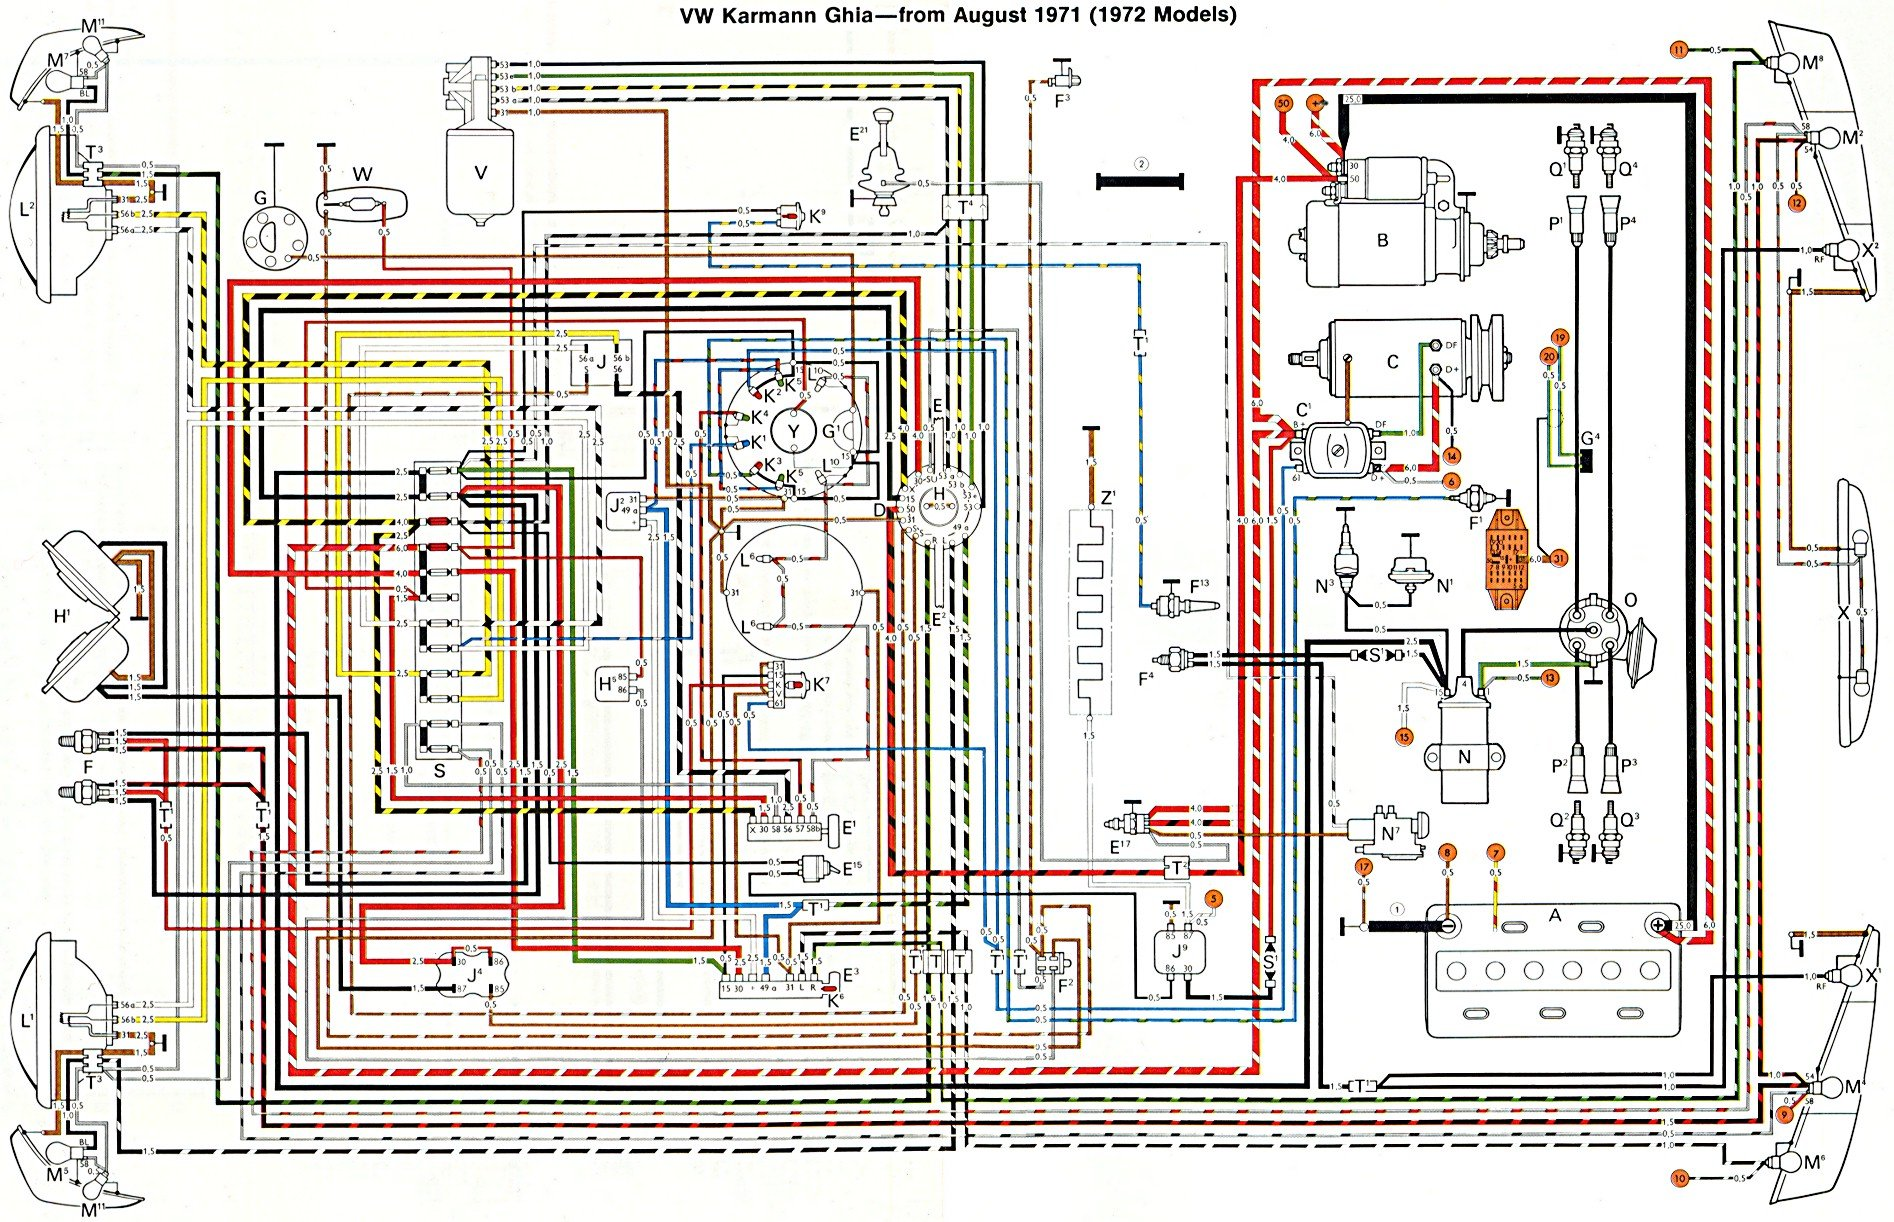 72ghia thesamba com karmann ghia wiring diagrams 1965 vw bus wiring harness at mifinder.co